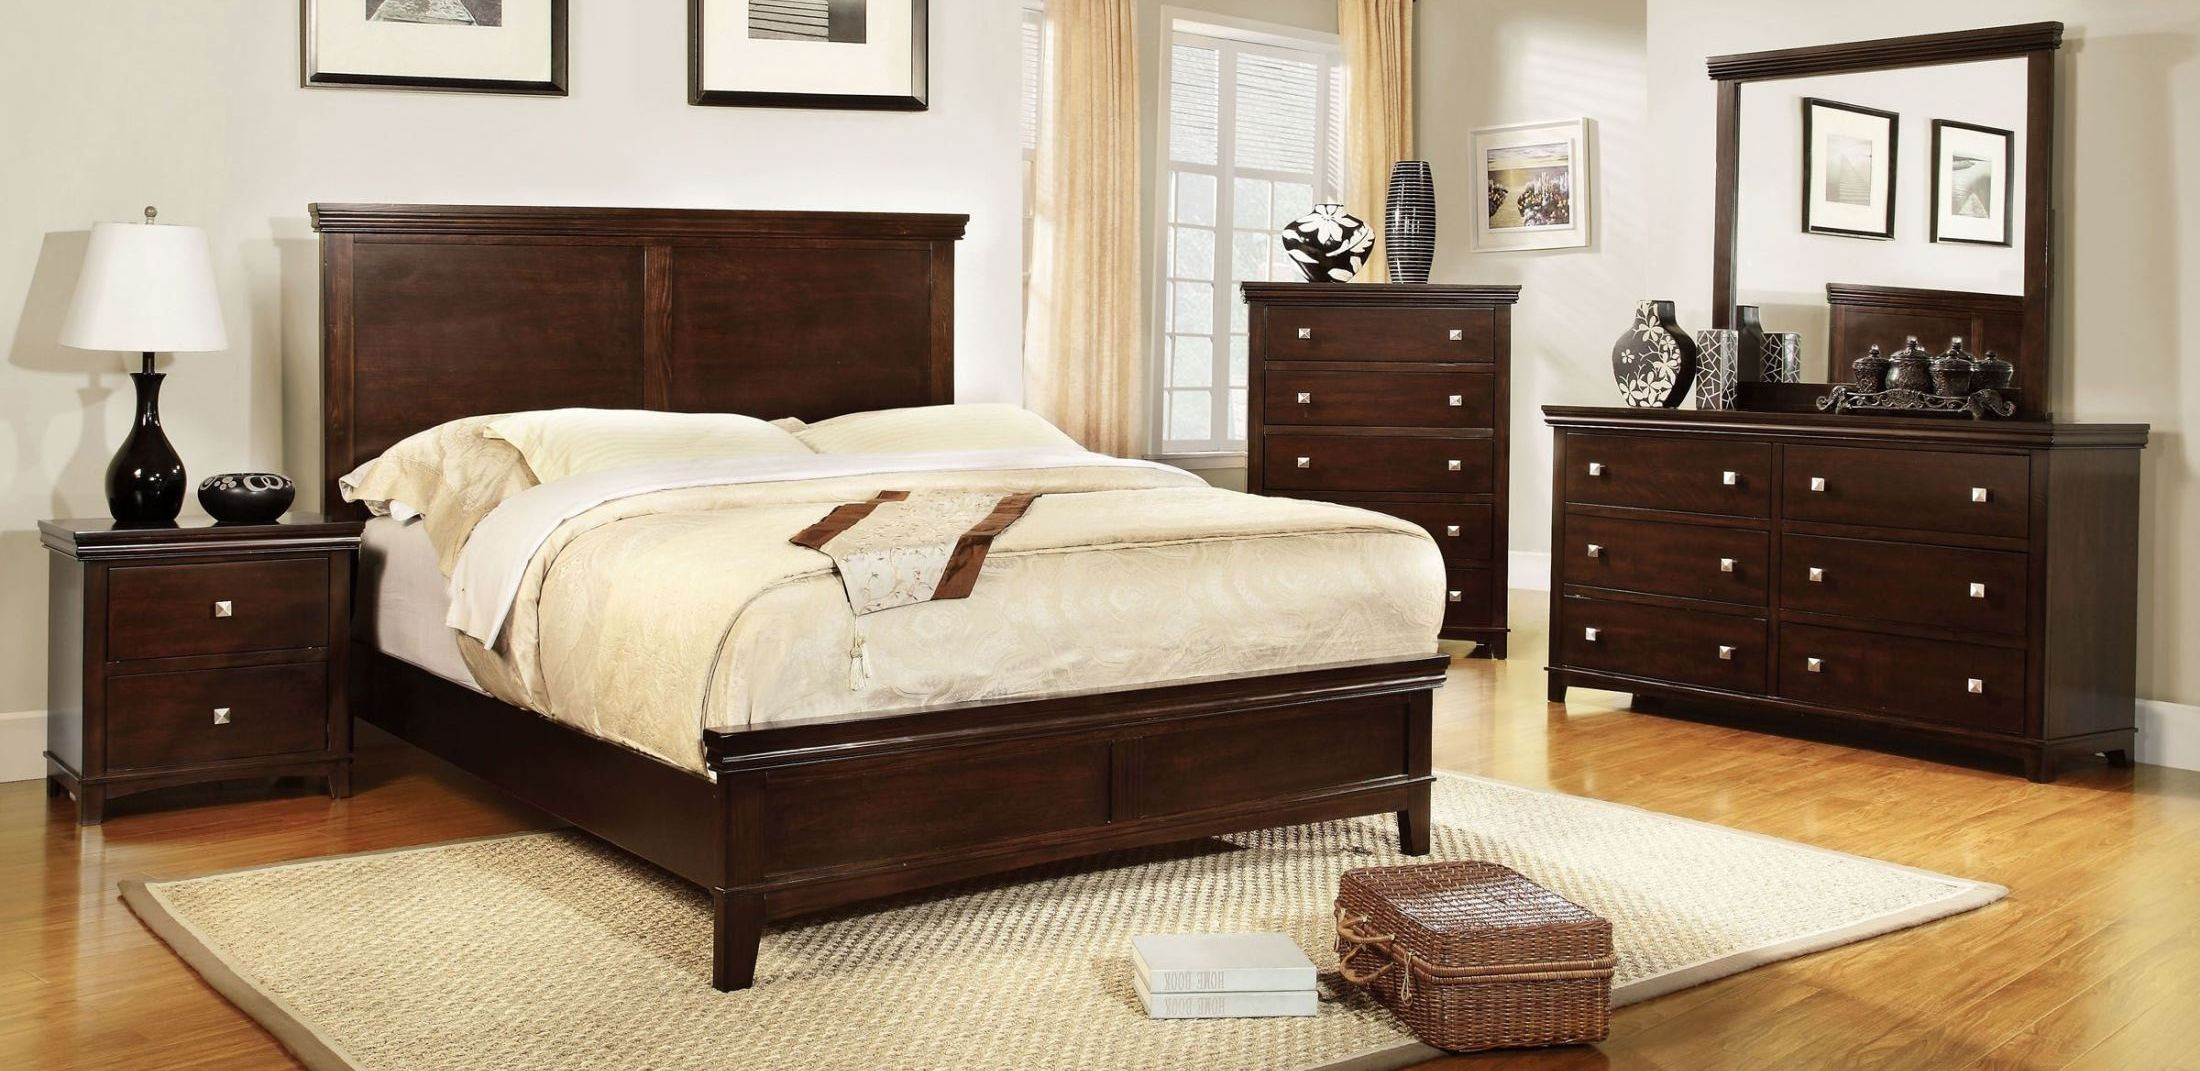 Spruce Brown Cherry Panel Bedroom Set From Furniture Of America Cm7113ch Q Bed Coleman Furniture